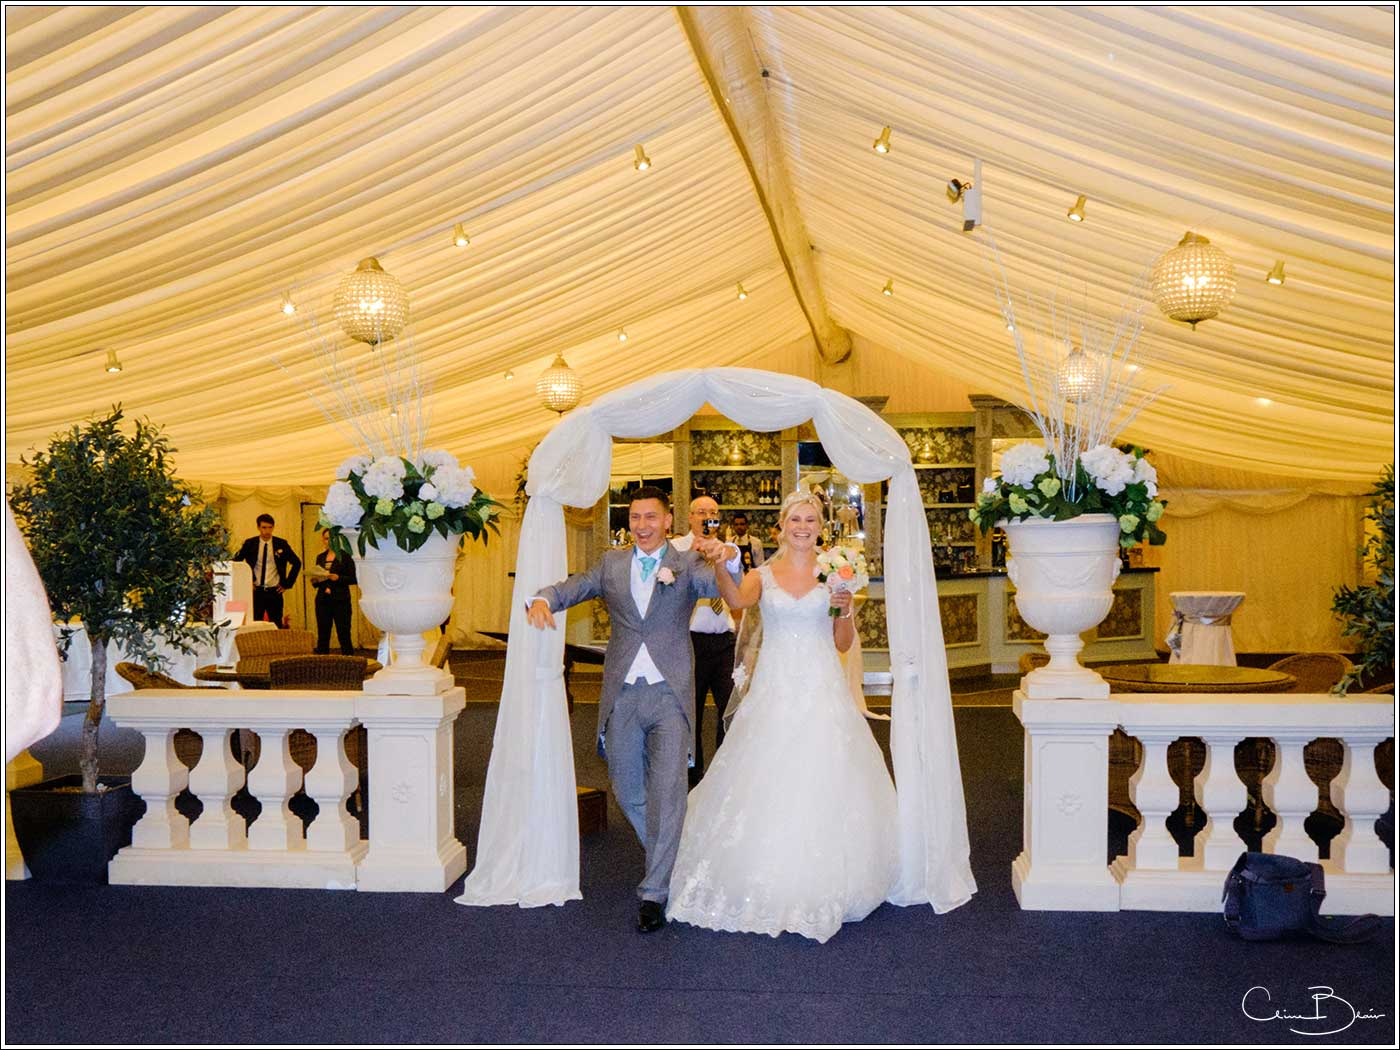 Coombe Abbey wedding photography showing happy bride and groom being welcomed in for their wedding breakfast